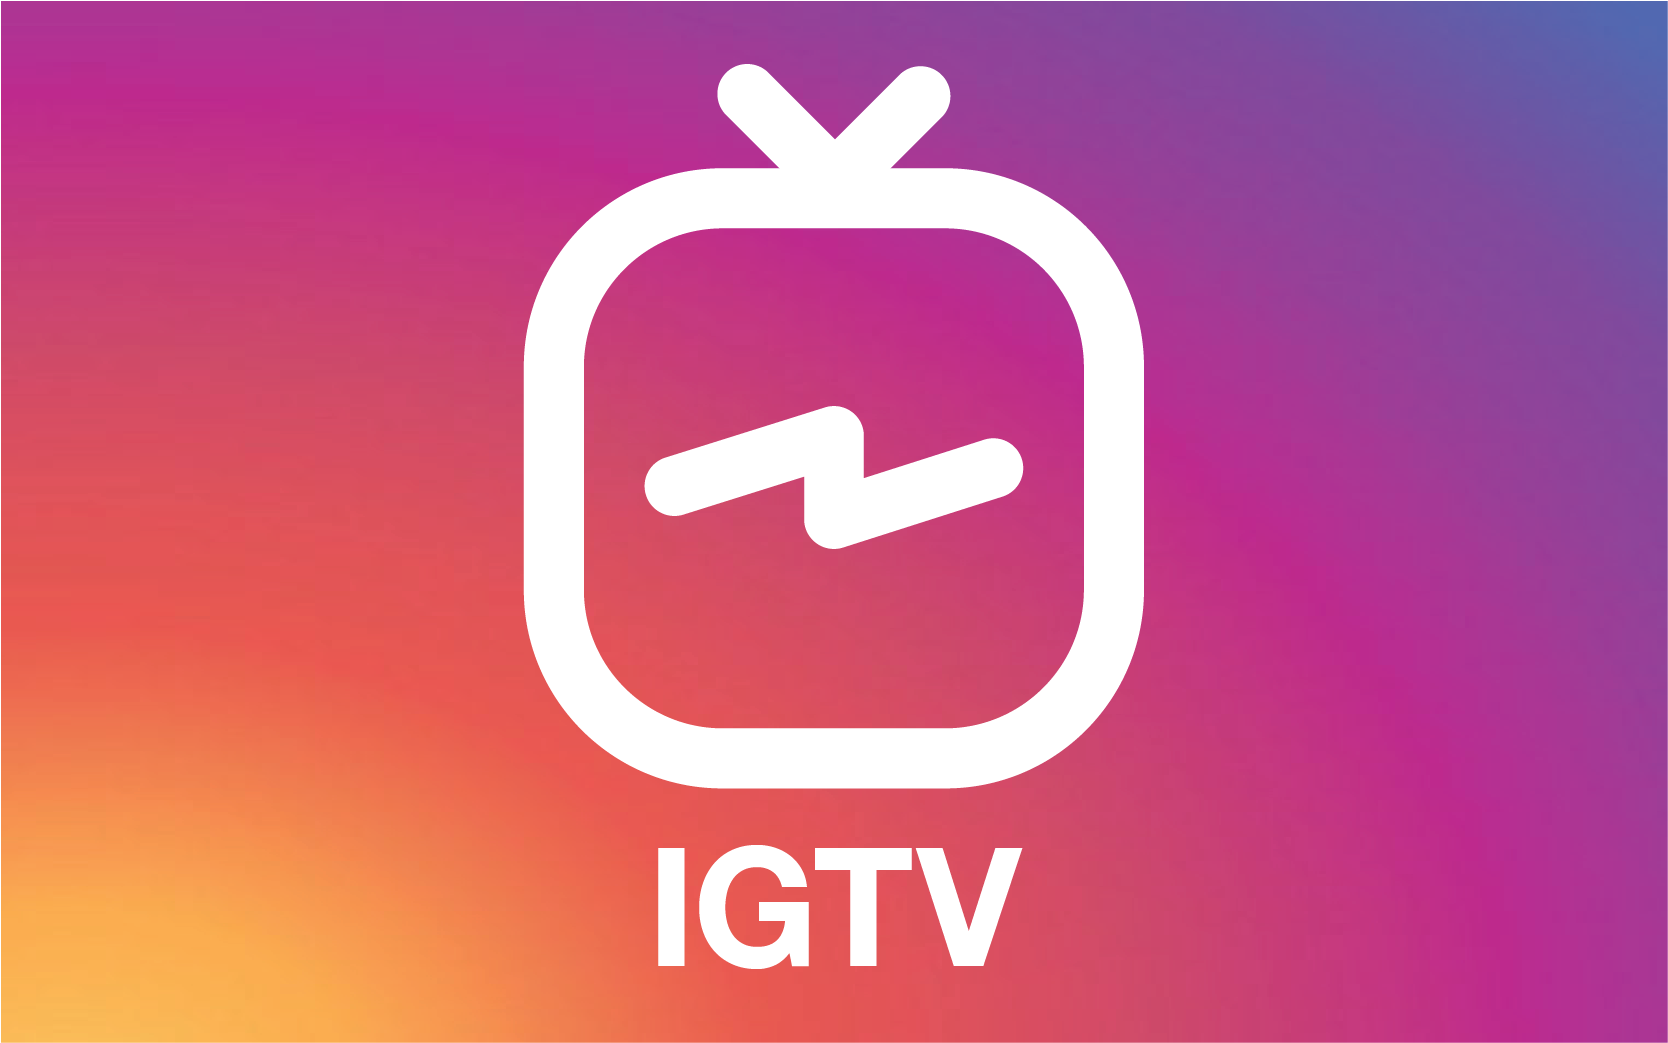 https://luckymalhotra.com/how-to-post-on-igtv-from-the-instagram-app/